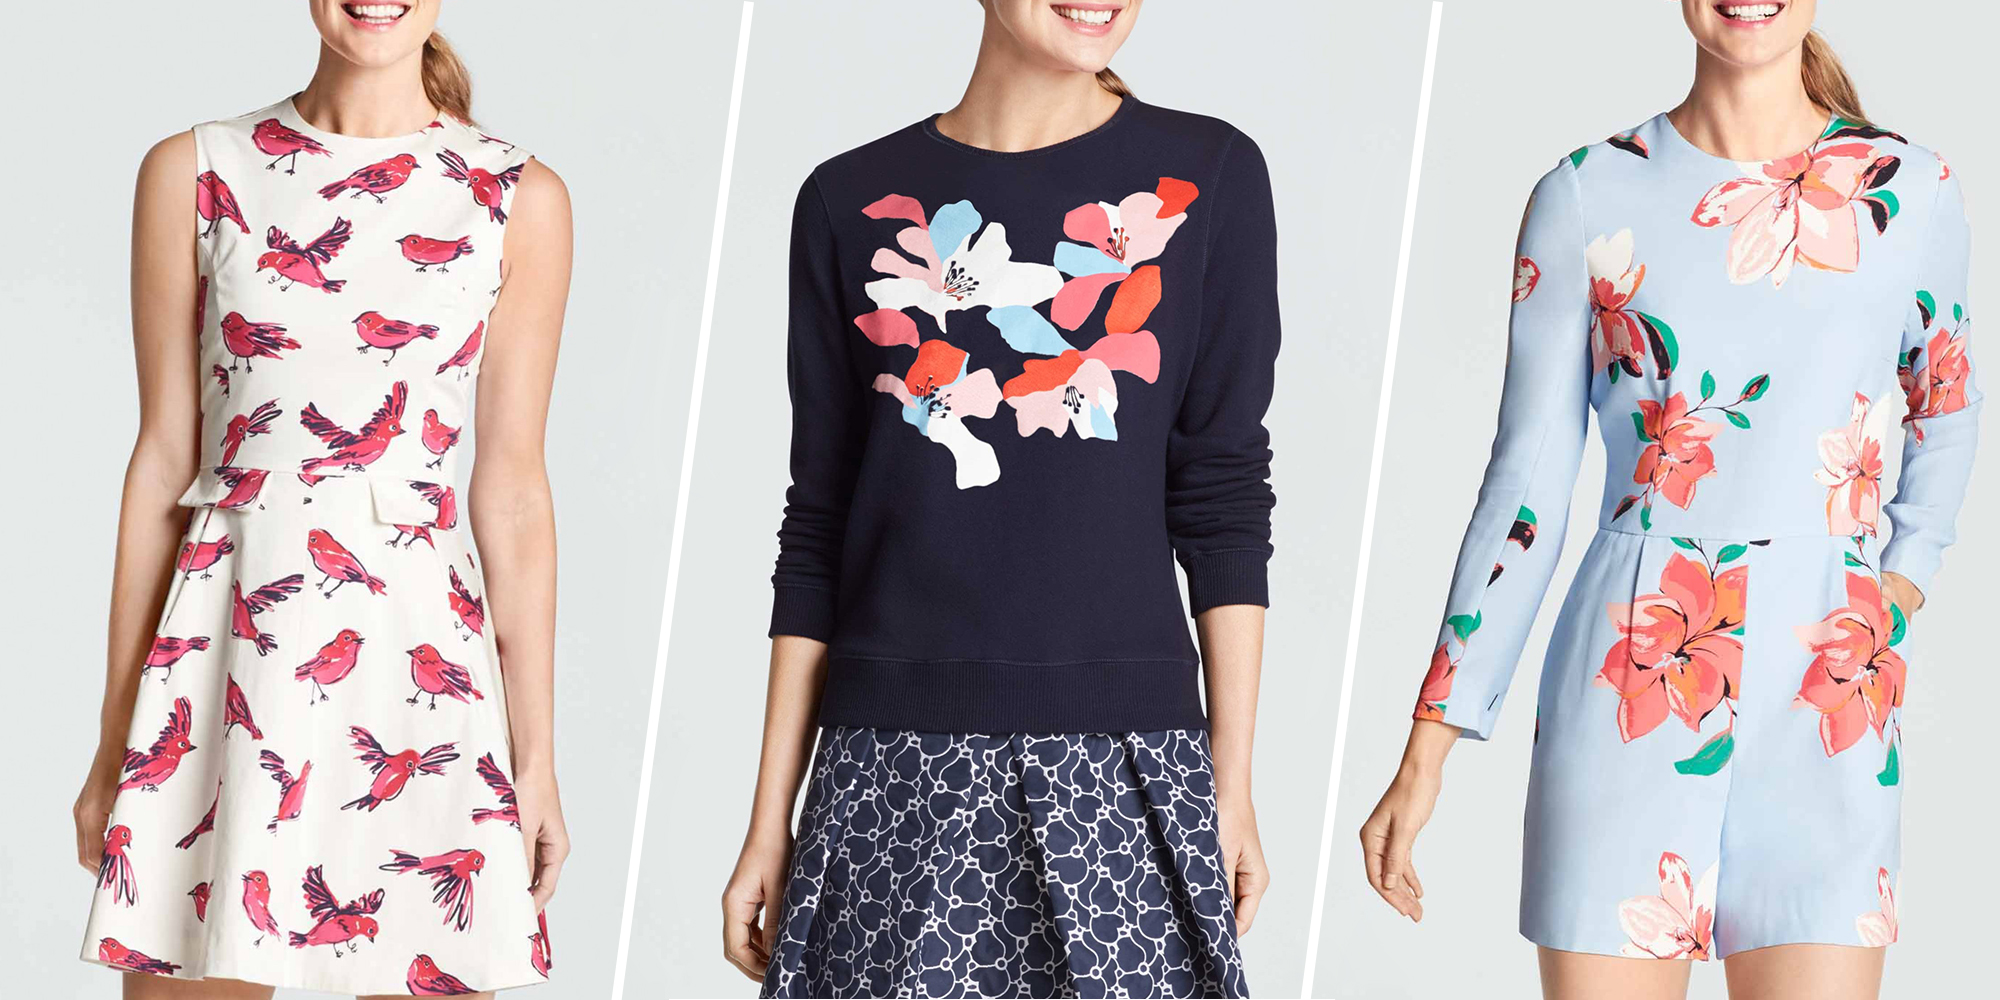 Reese Witherspoon's New Clothing Line 'Draper James' Best ... Reese Witherspoon Clothing Line